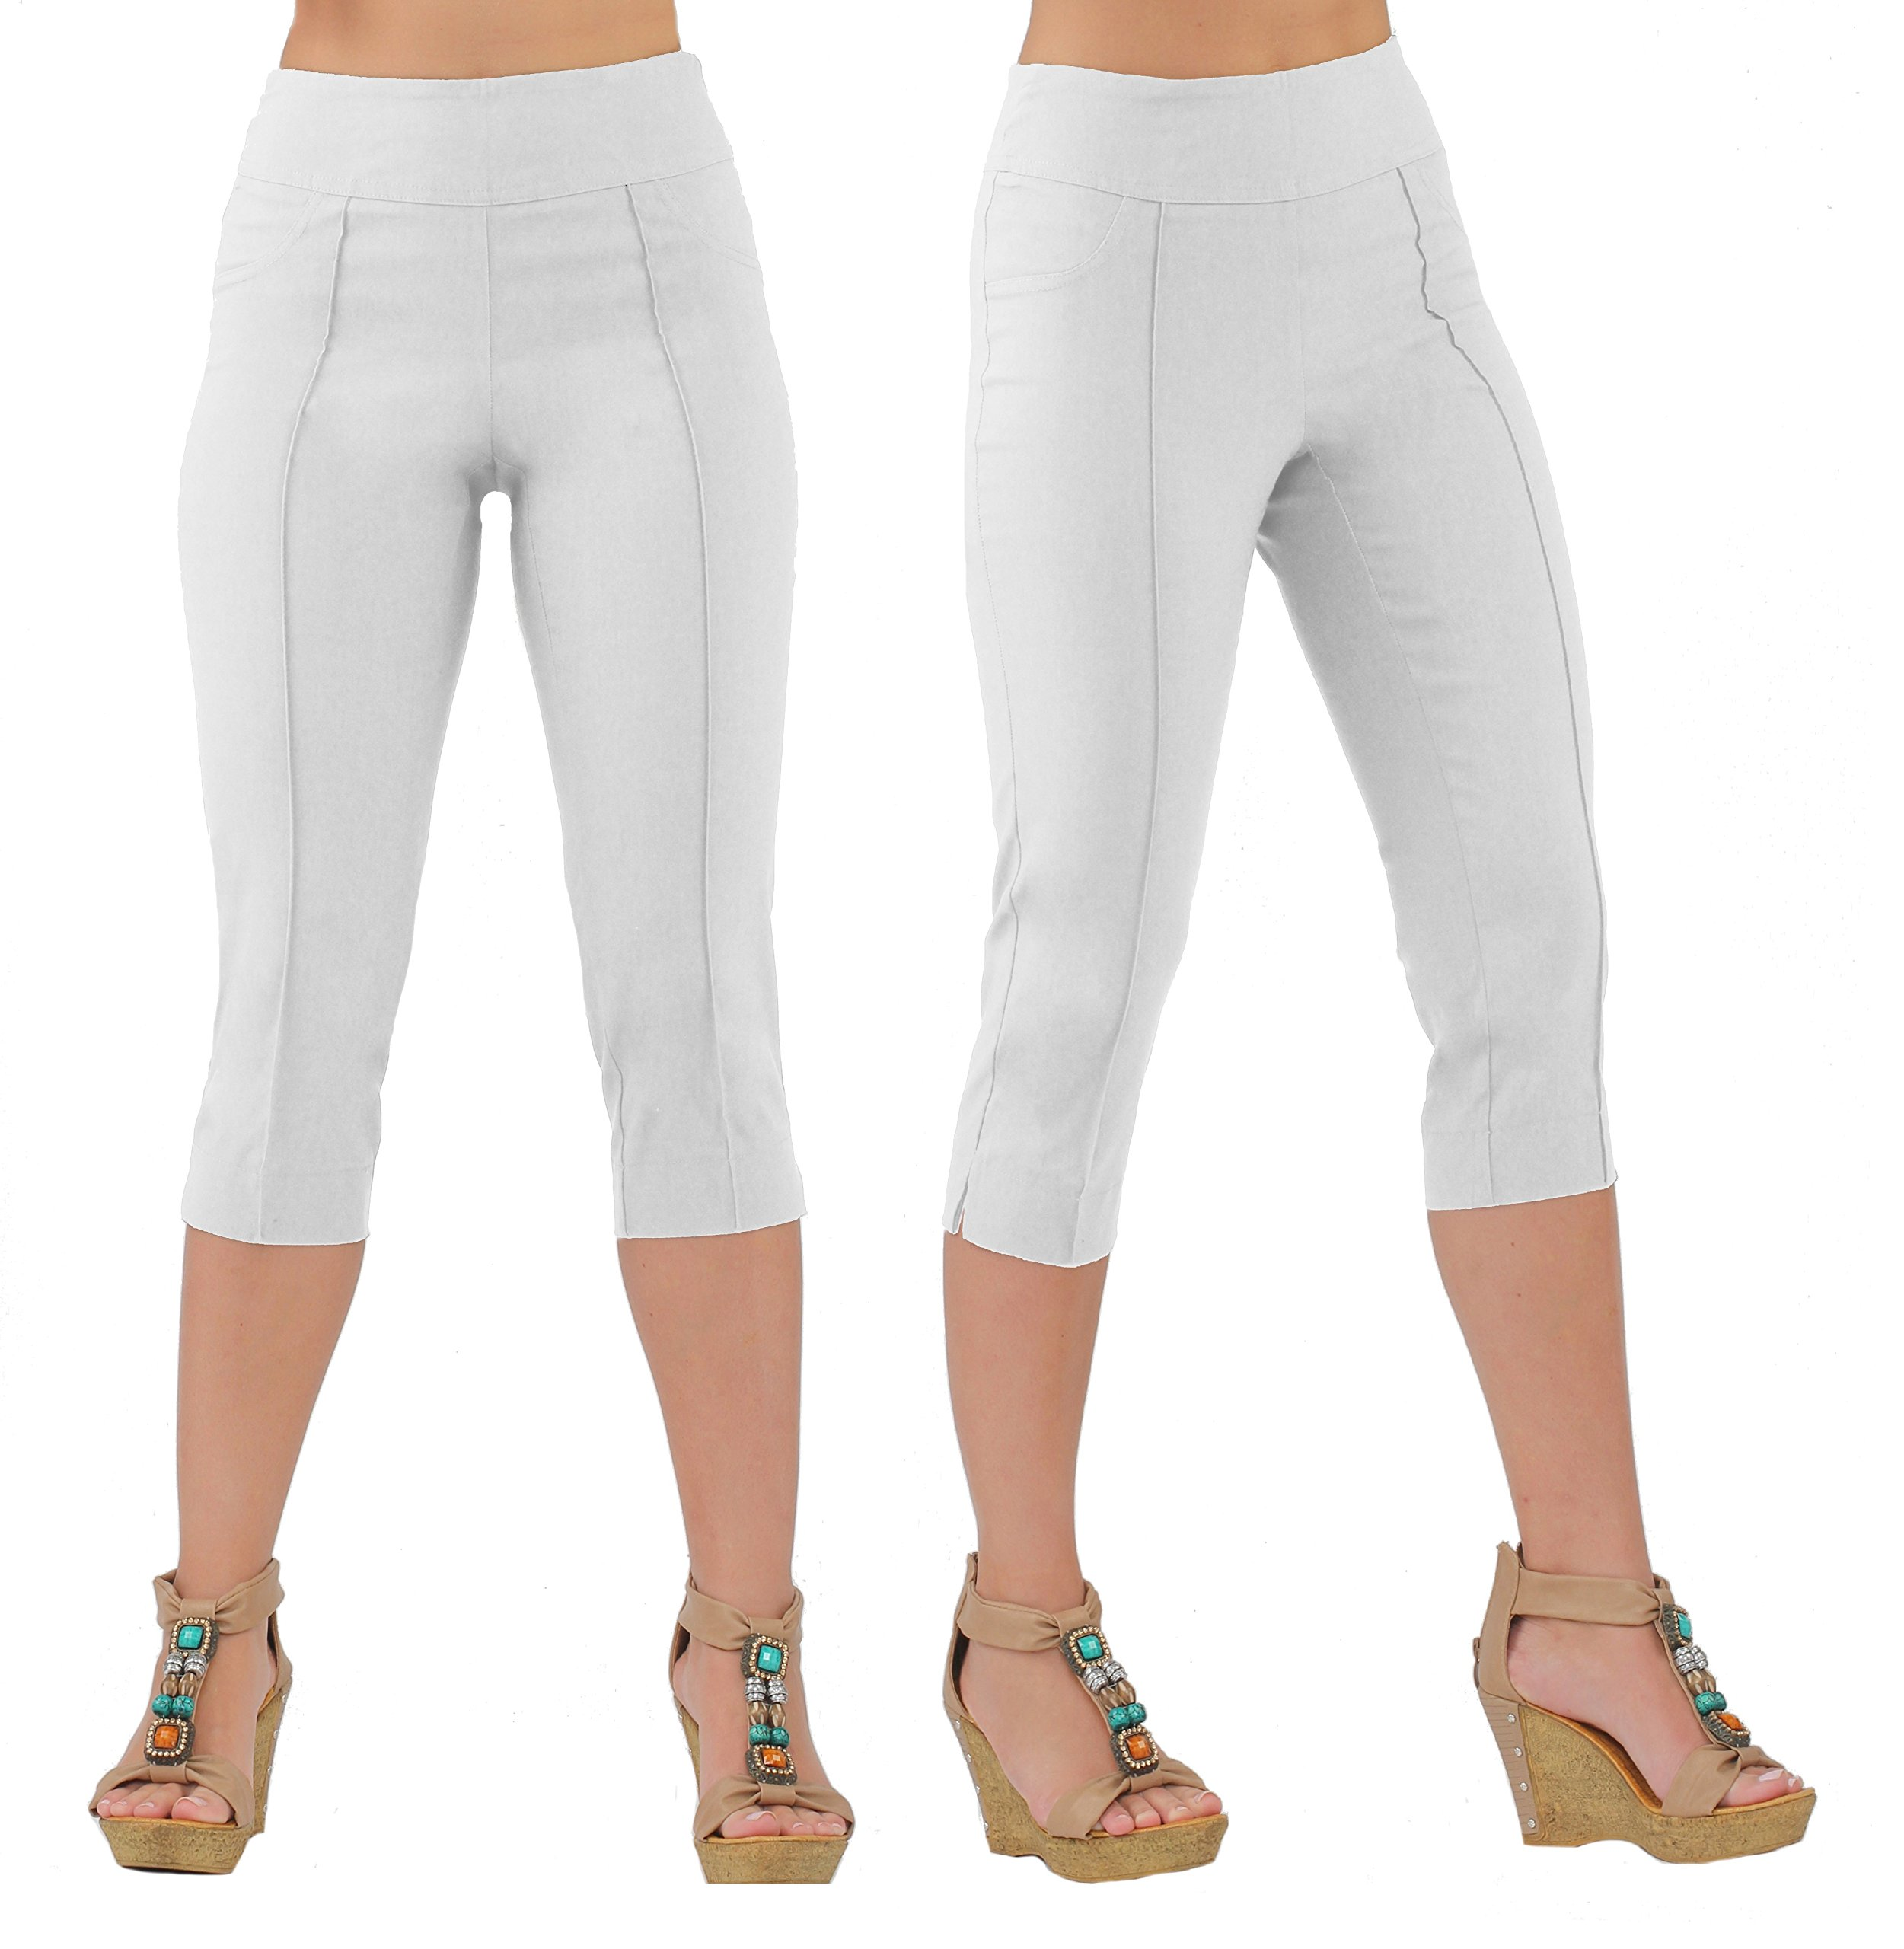 Lior Paris Women's LUNA Tapered Leg Pull on Capri with Top Stitching Details (3,White)